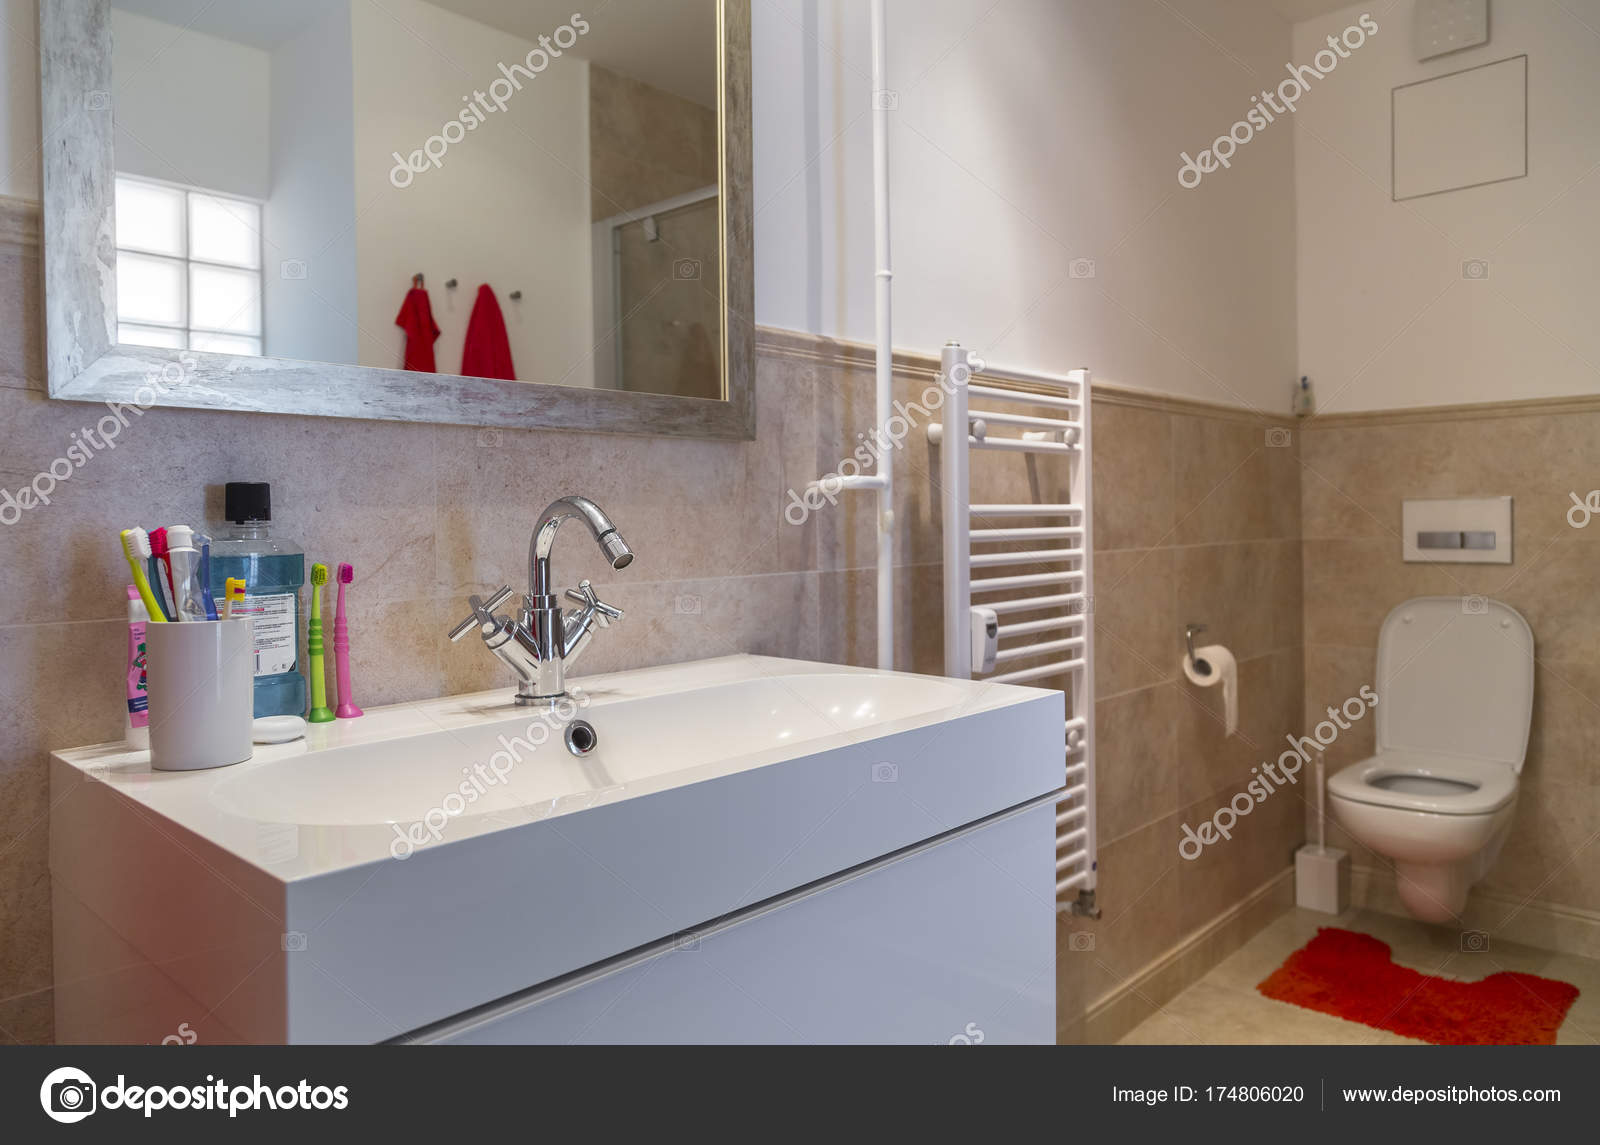 Nice Bathroom In A Two Room Apartment Stock Photo C Ondrooo 174806020 - Nice-apartment-bathrooms